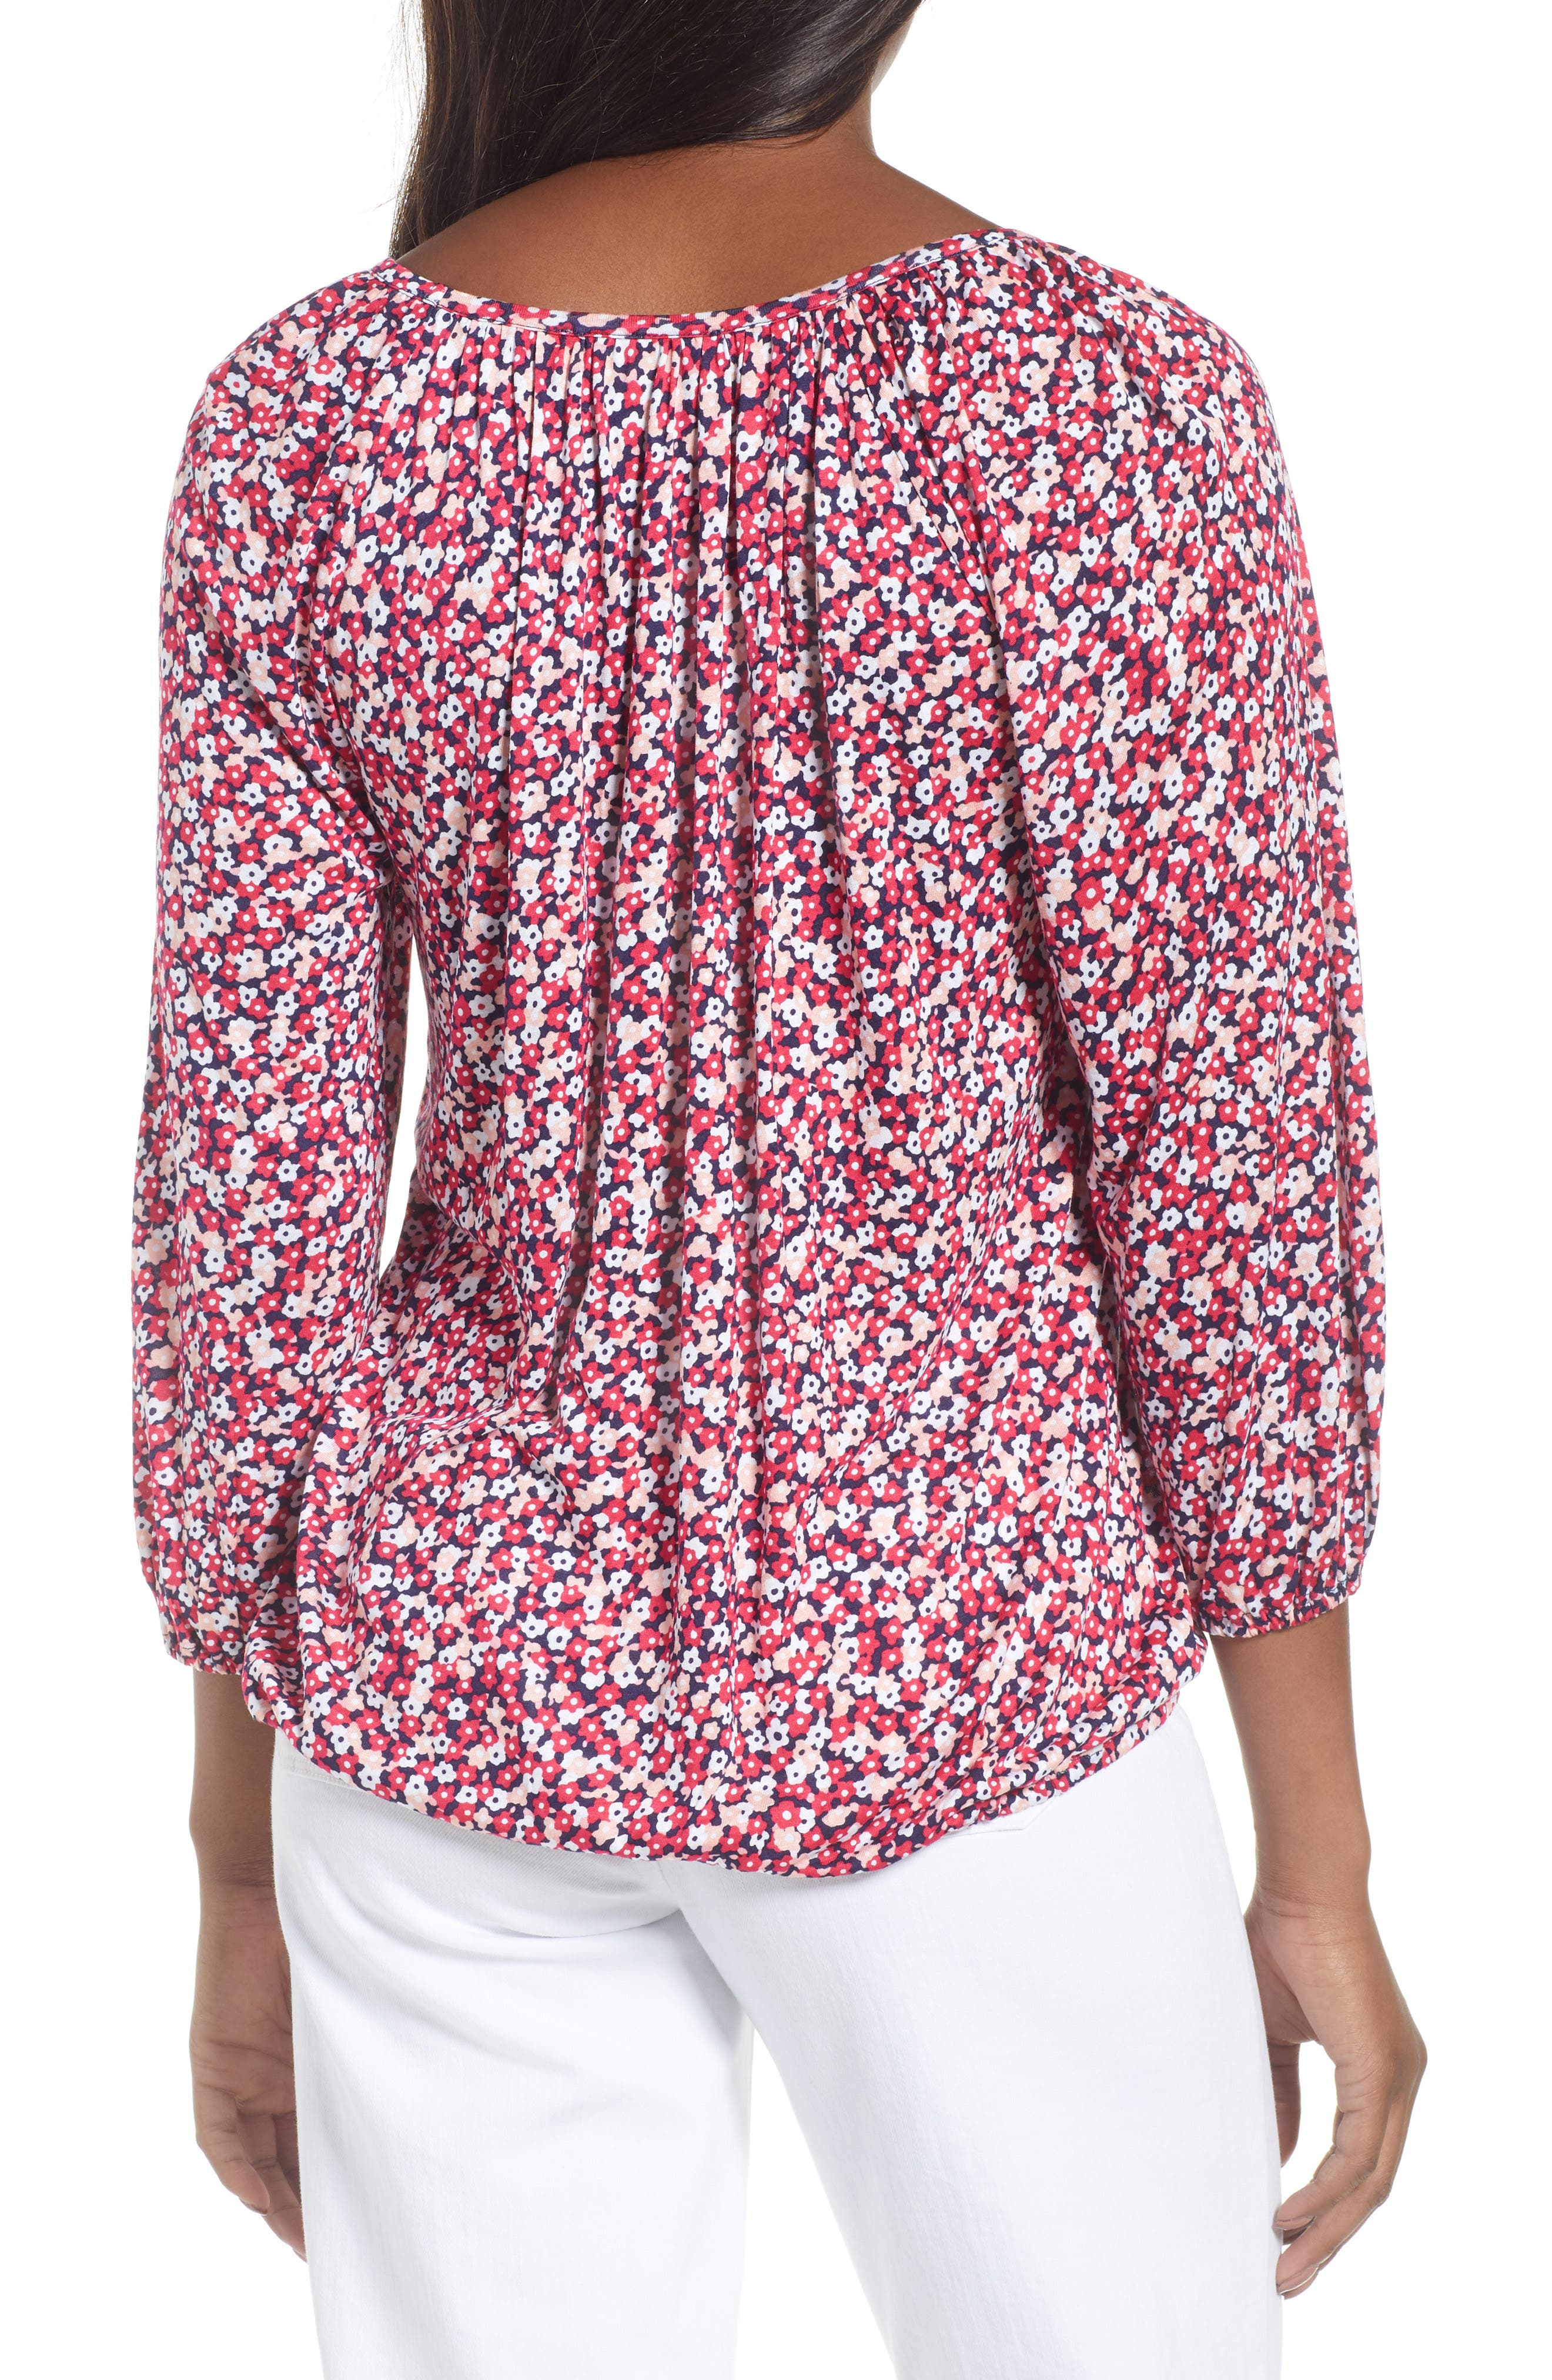 Collage Floral Print Peasant Top,                             Alternate thumbnail 2, color,                             True Navy/ Bright Blush